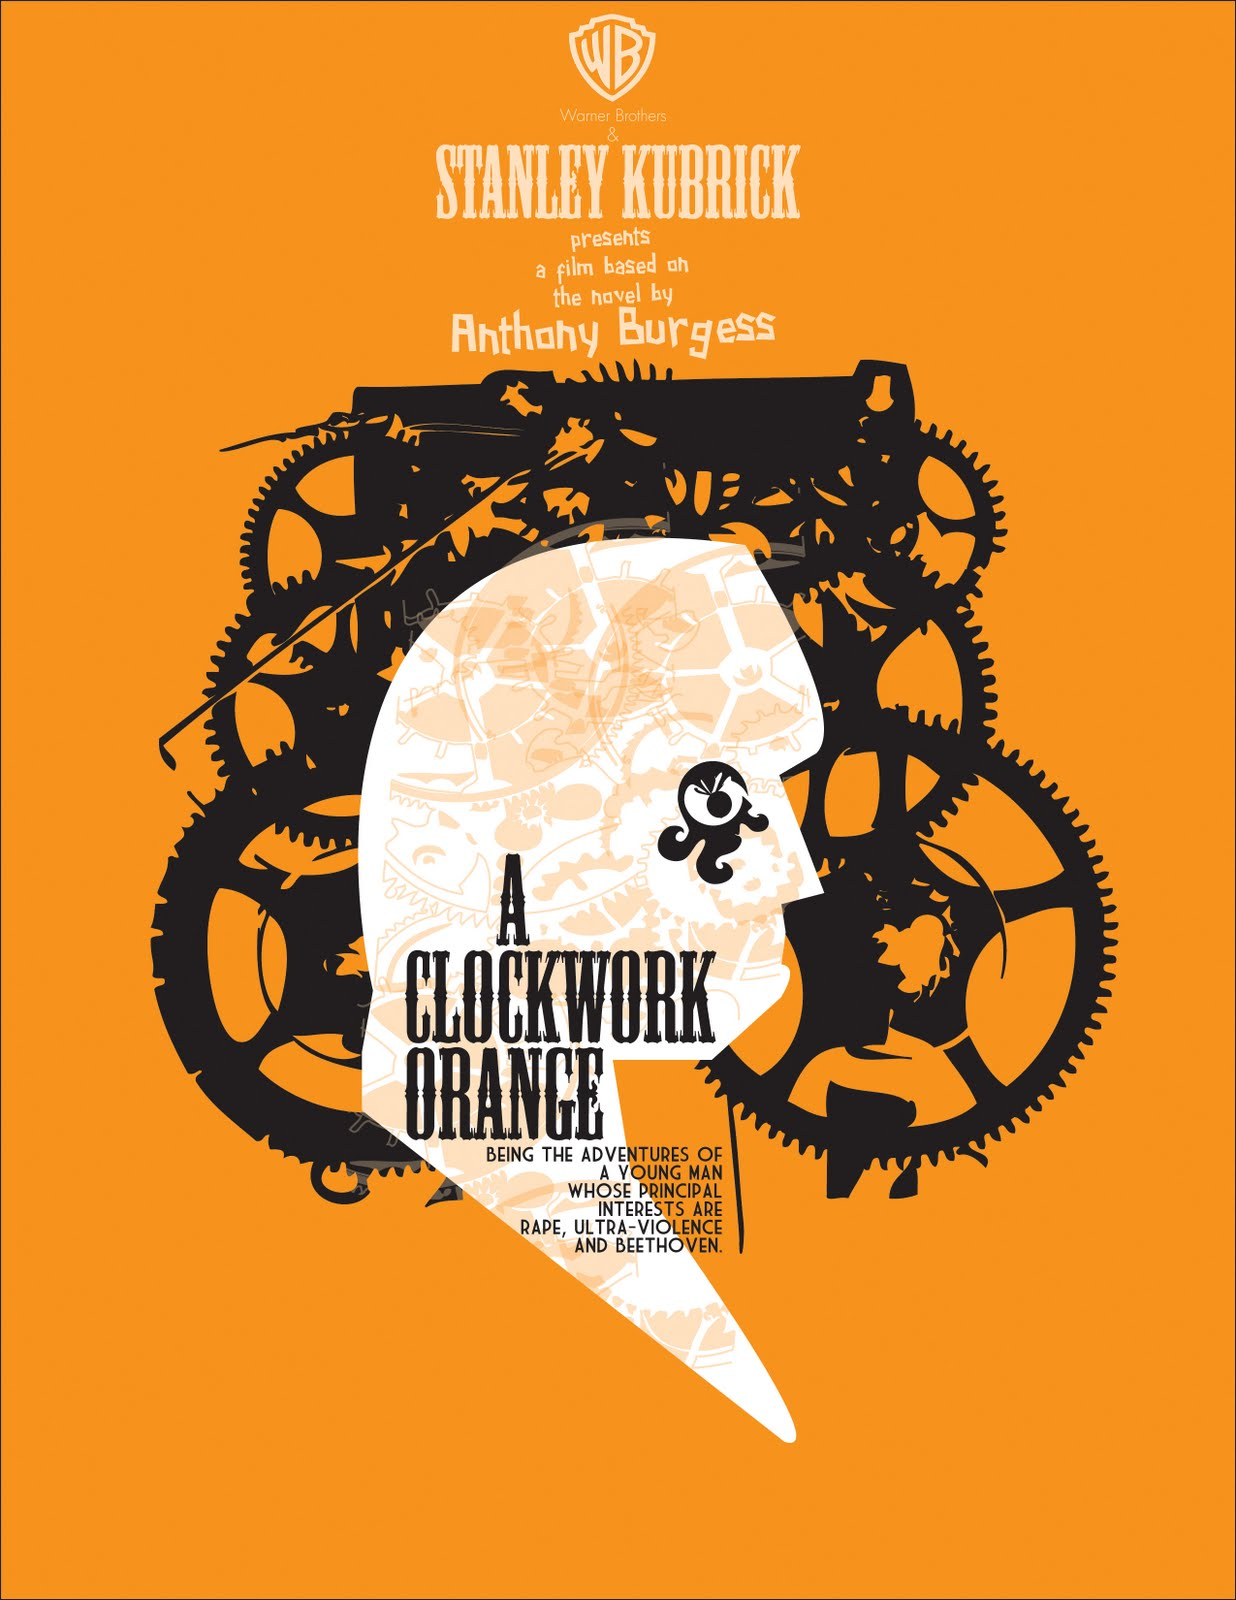 psychology clockwork orange Excerpt from term paper : psychopathology in popular film a clockwork orange psychology -- abnormal psychopathology symptoms have been analyzed through various movies but the movie a clockwork orange has raised several deep philosophical questions that are still unanswered this movie reflected the dilemma that an increase in moral leads to a decrease in freedom.